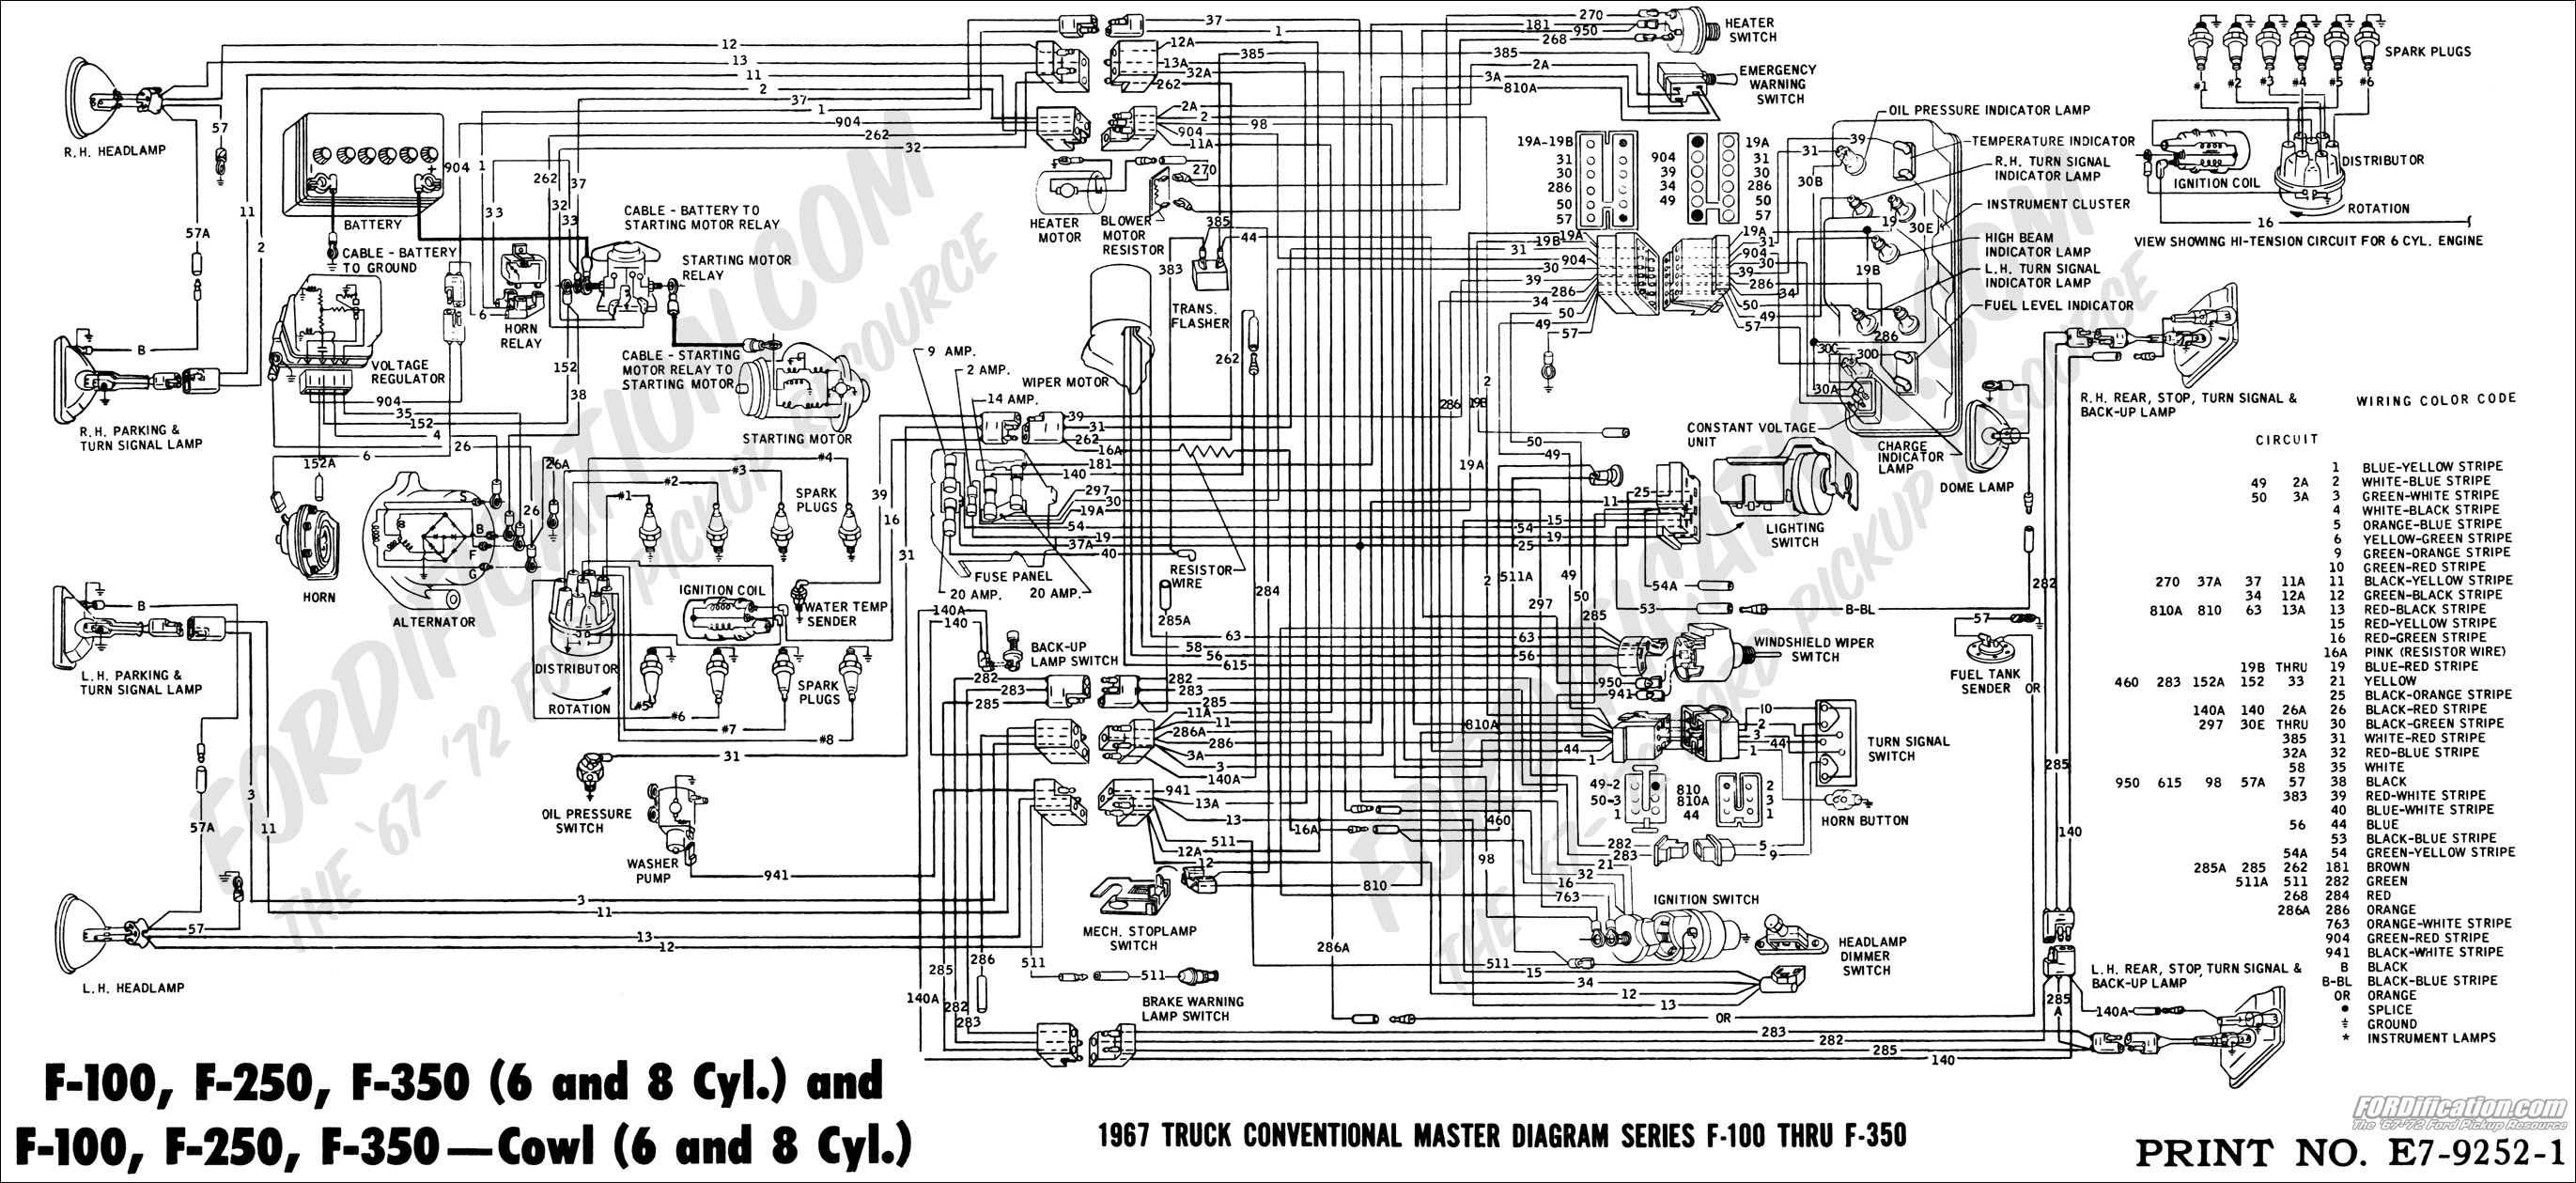 ford truck wire diagram wiring diagram data schemaford truck technical drawings and schematics section h wiring ford truck wiring diagrams free ford truck